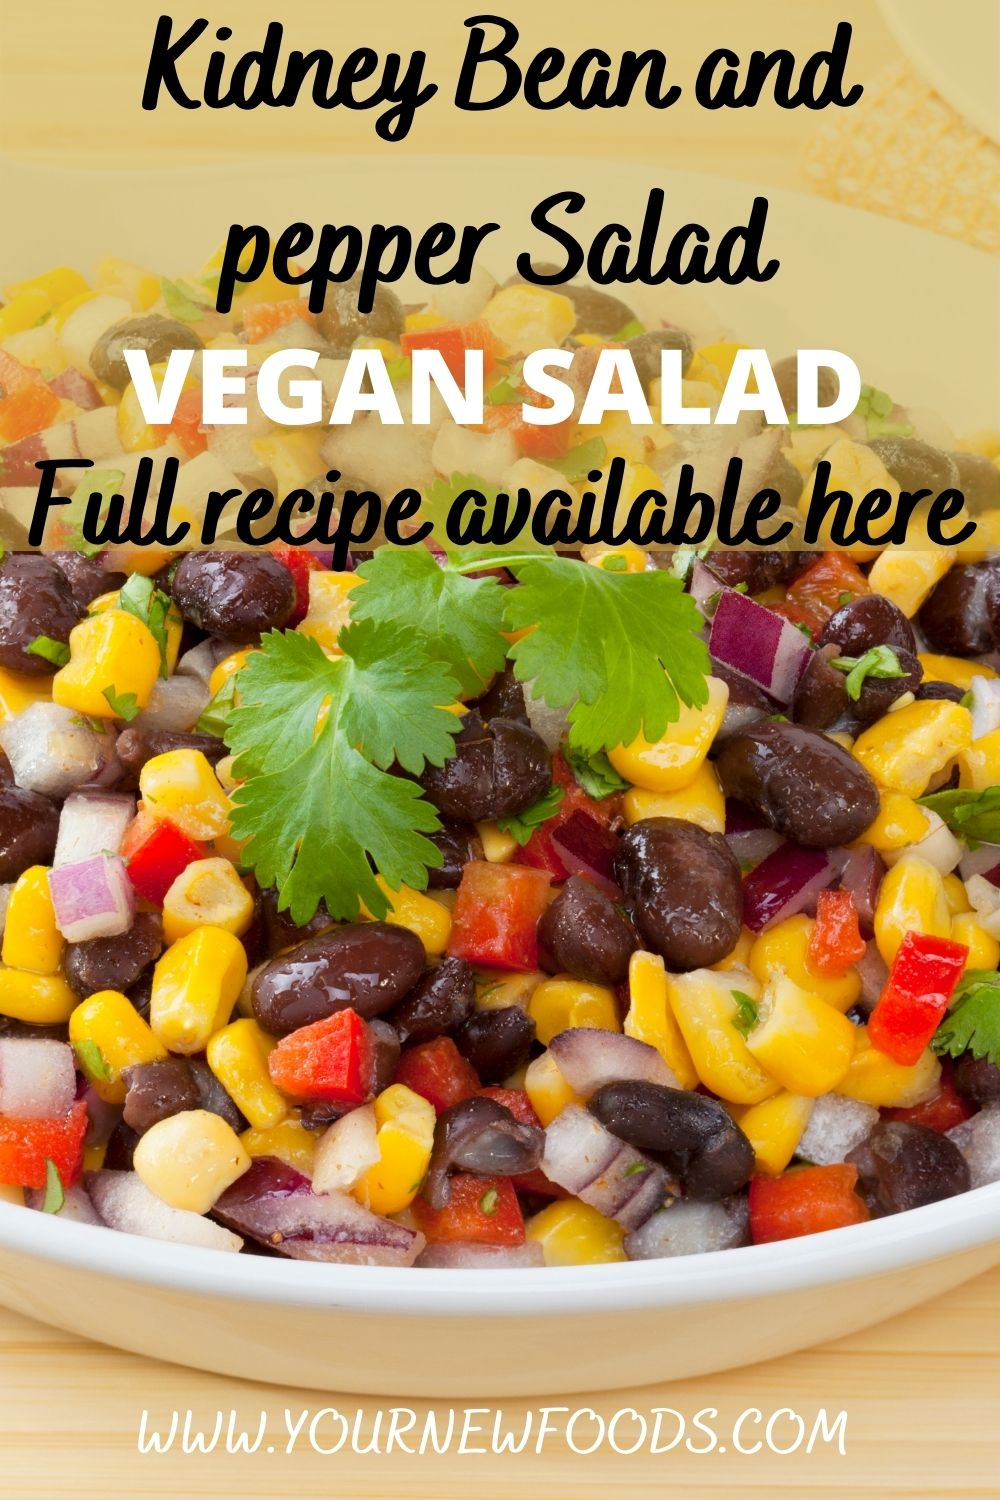 Kidney Bean and pepper Salad